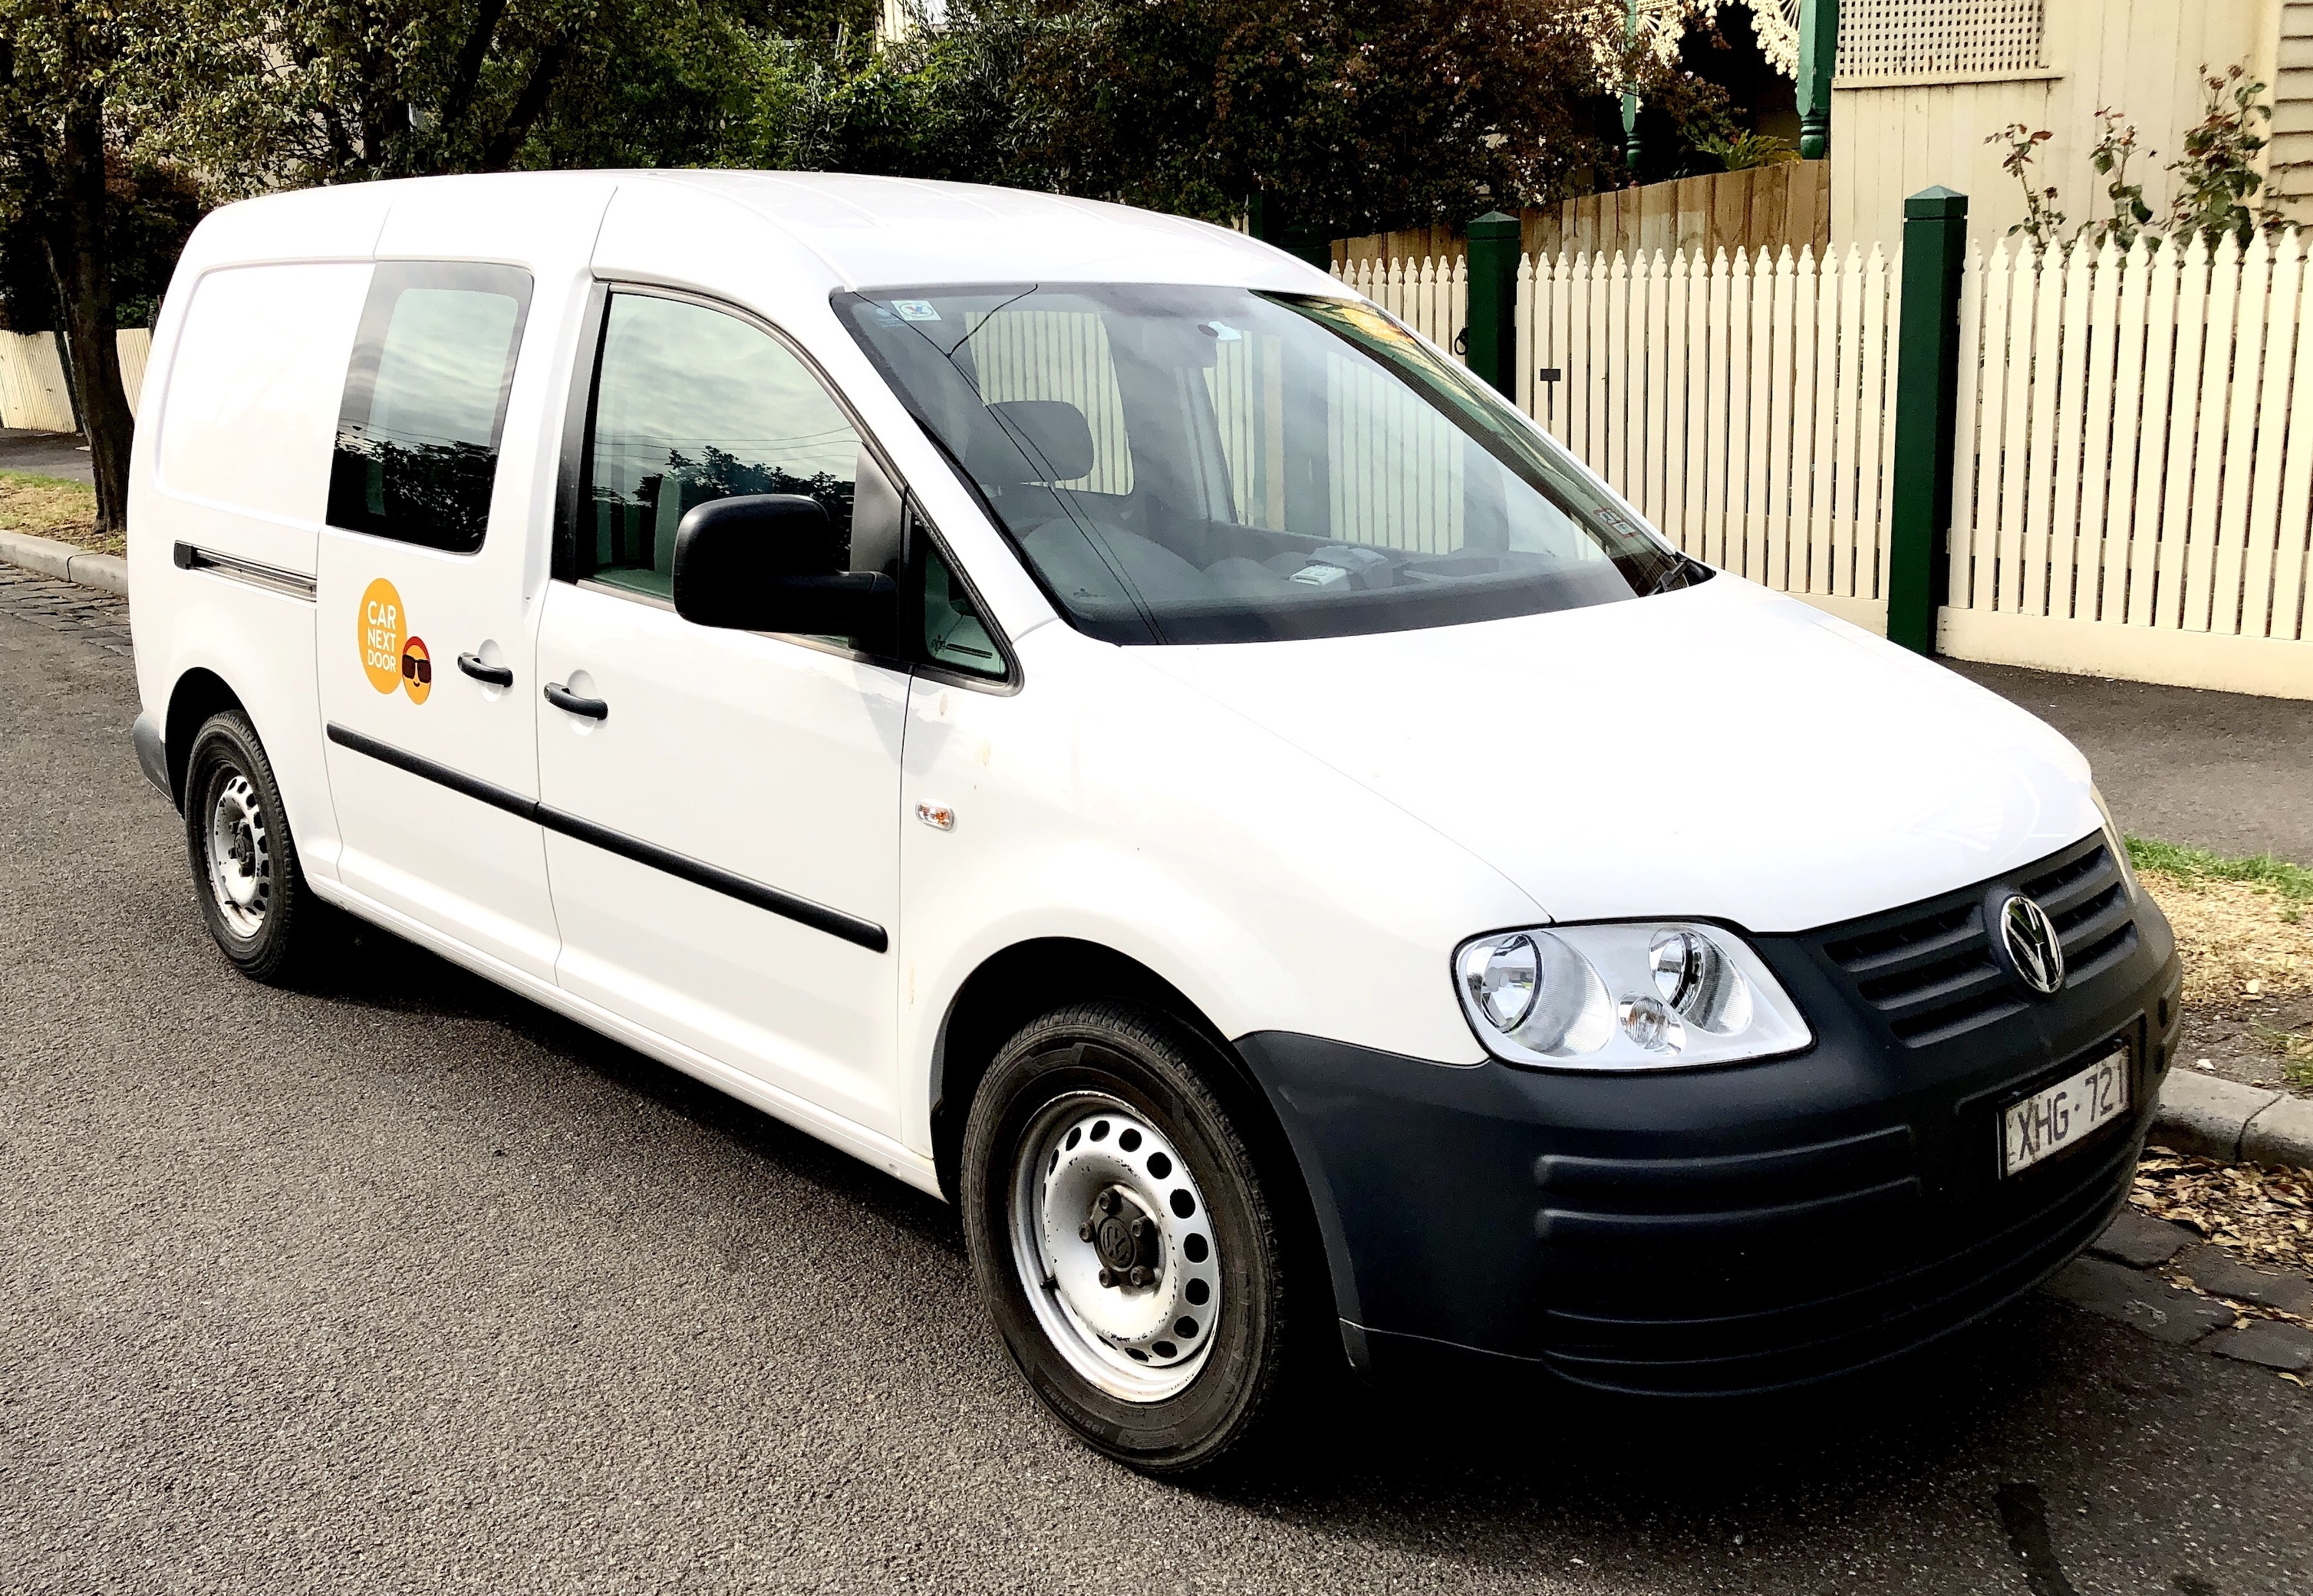 Picture of Apanie's 2009 VW Caddy Maxi